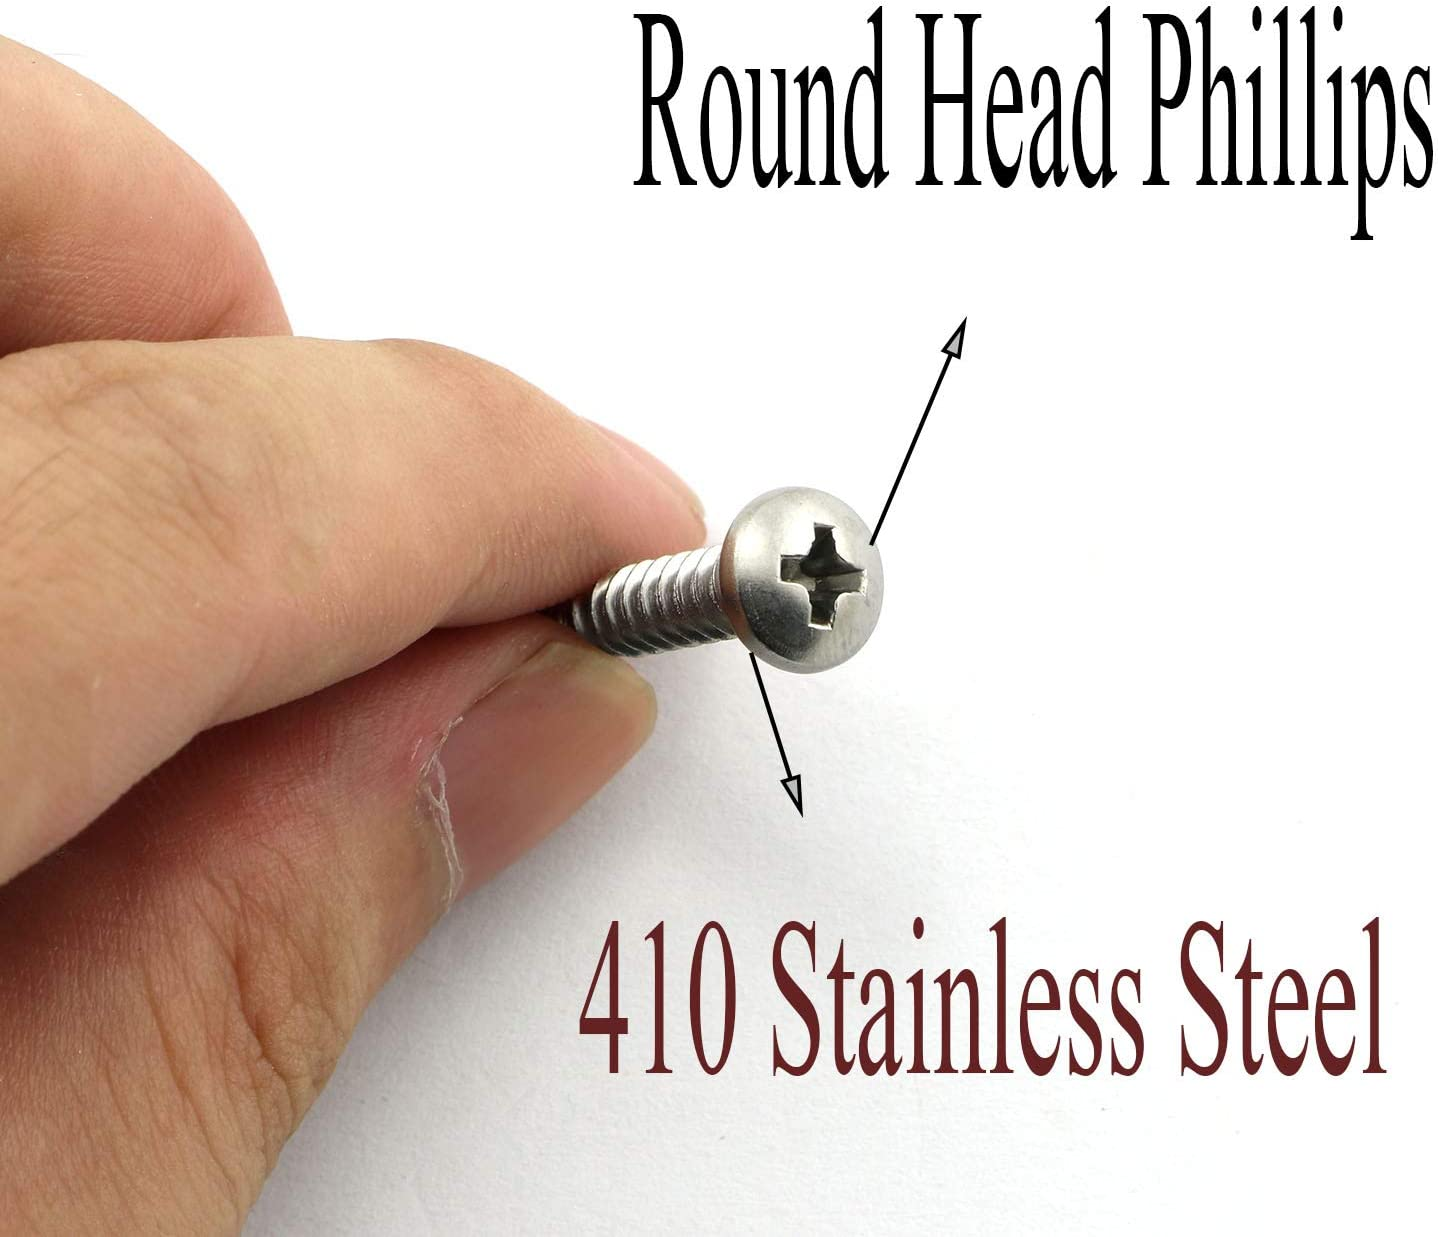 50 Pack #10x1 Inch Self-Drilling Dovetail Screws Kit 410 Stainless Steel Round Head Phillips Drive Drill Point Tek Screws